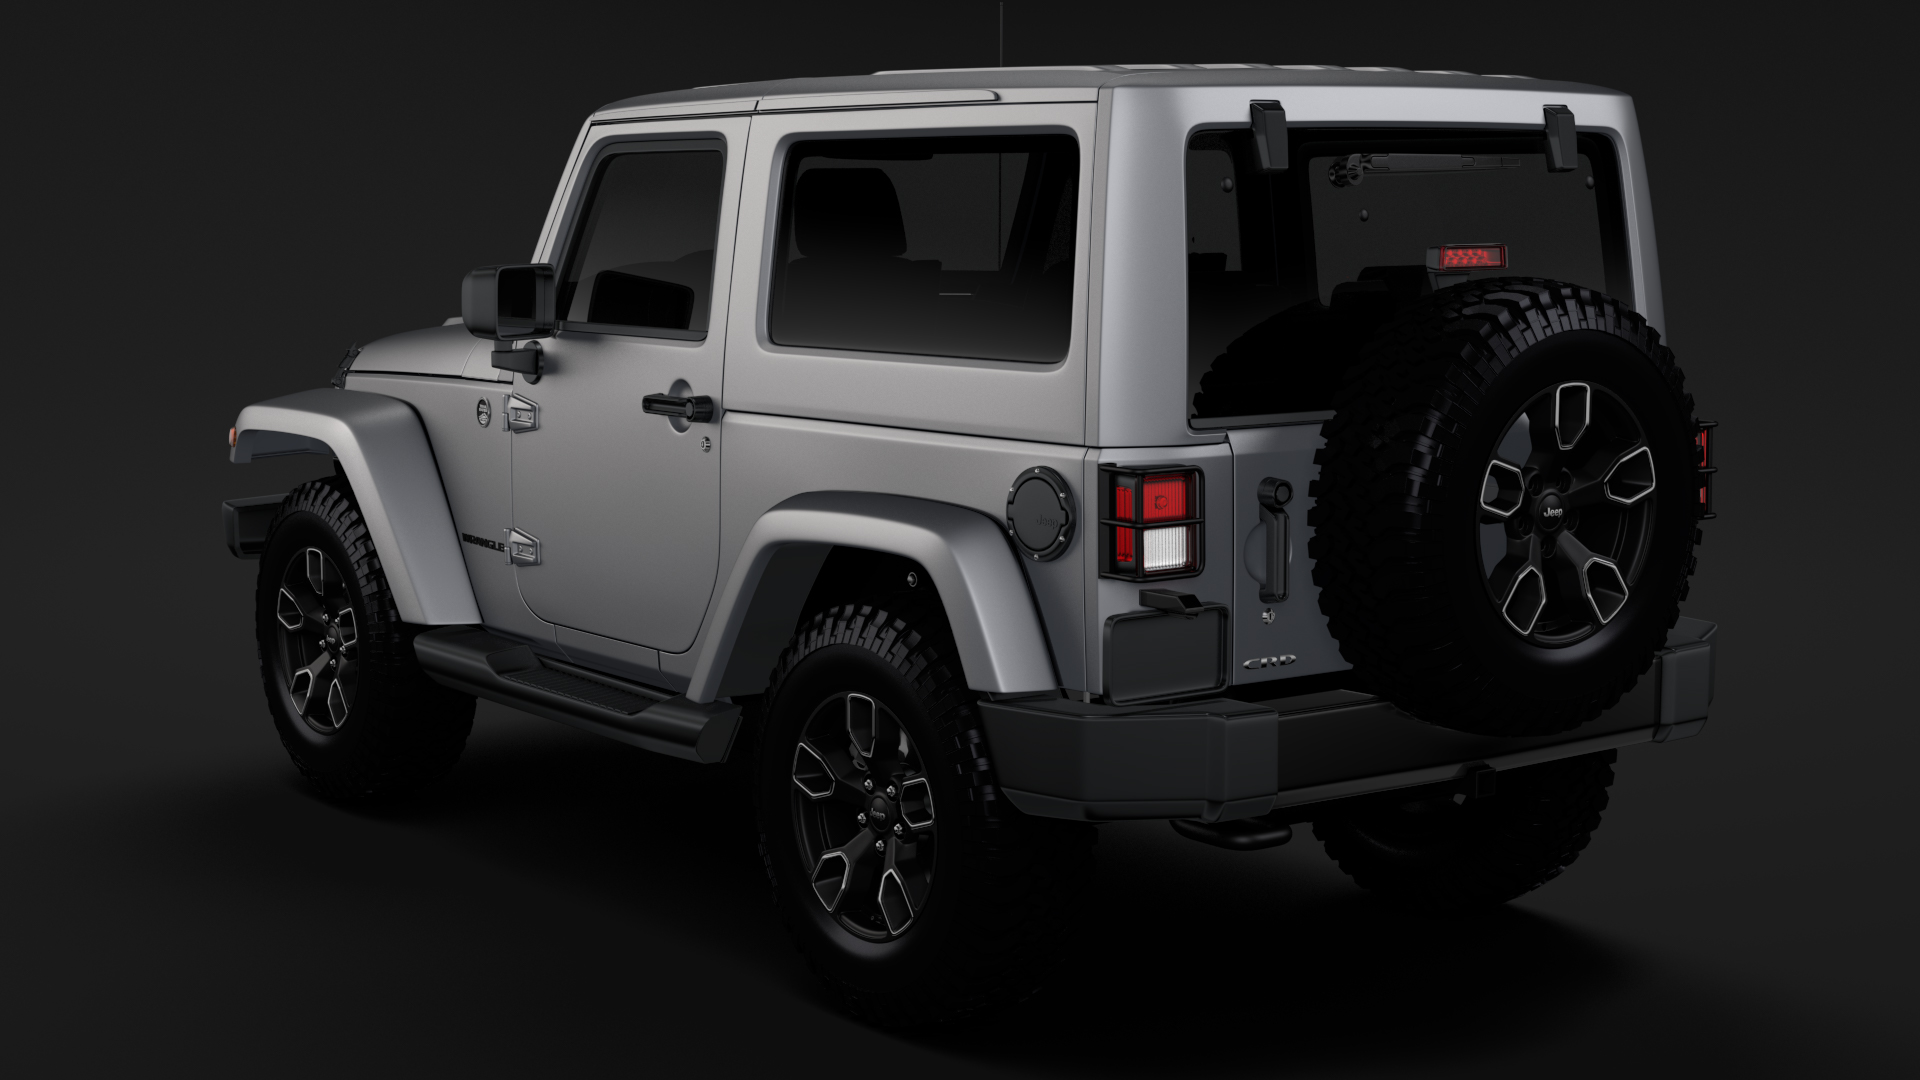 jeep wrangler smoky mountain jk 2017 3d model max fbx lwo hrc xsi 276691